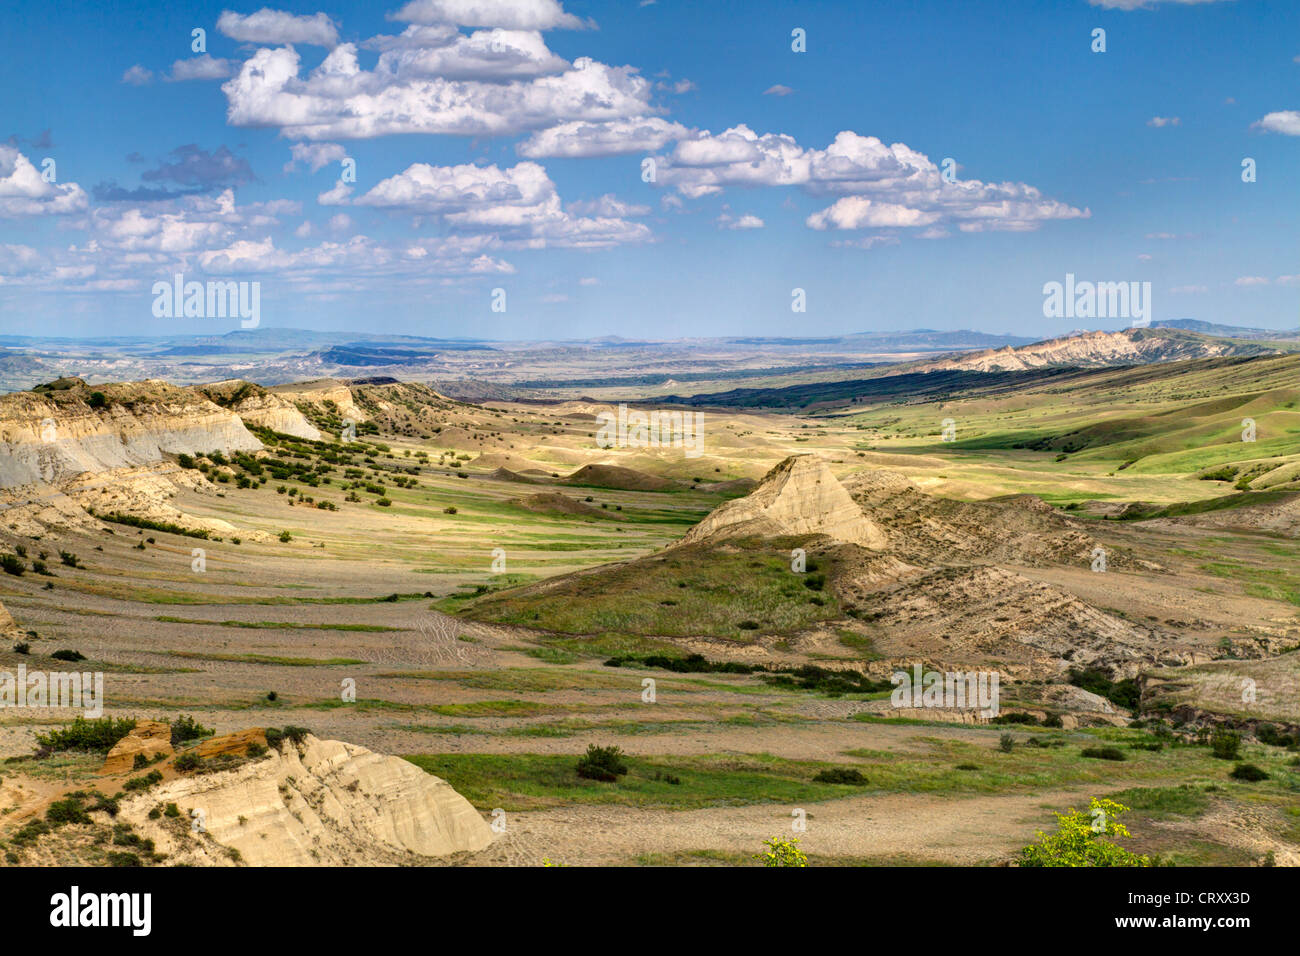 Highland steppes in eastern Caucasian mountains (The Republic of Georgia, border with Azerbaijan), HDR technique. - Stock Image